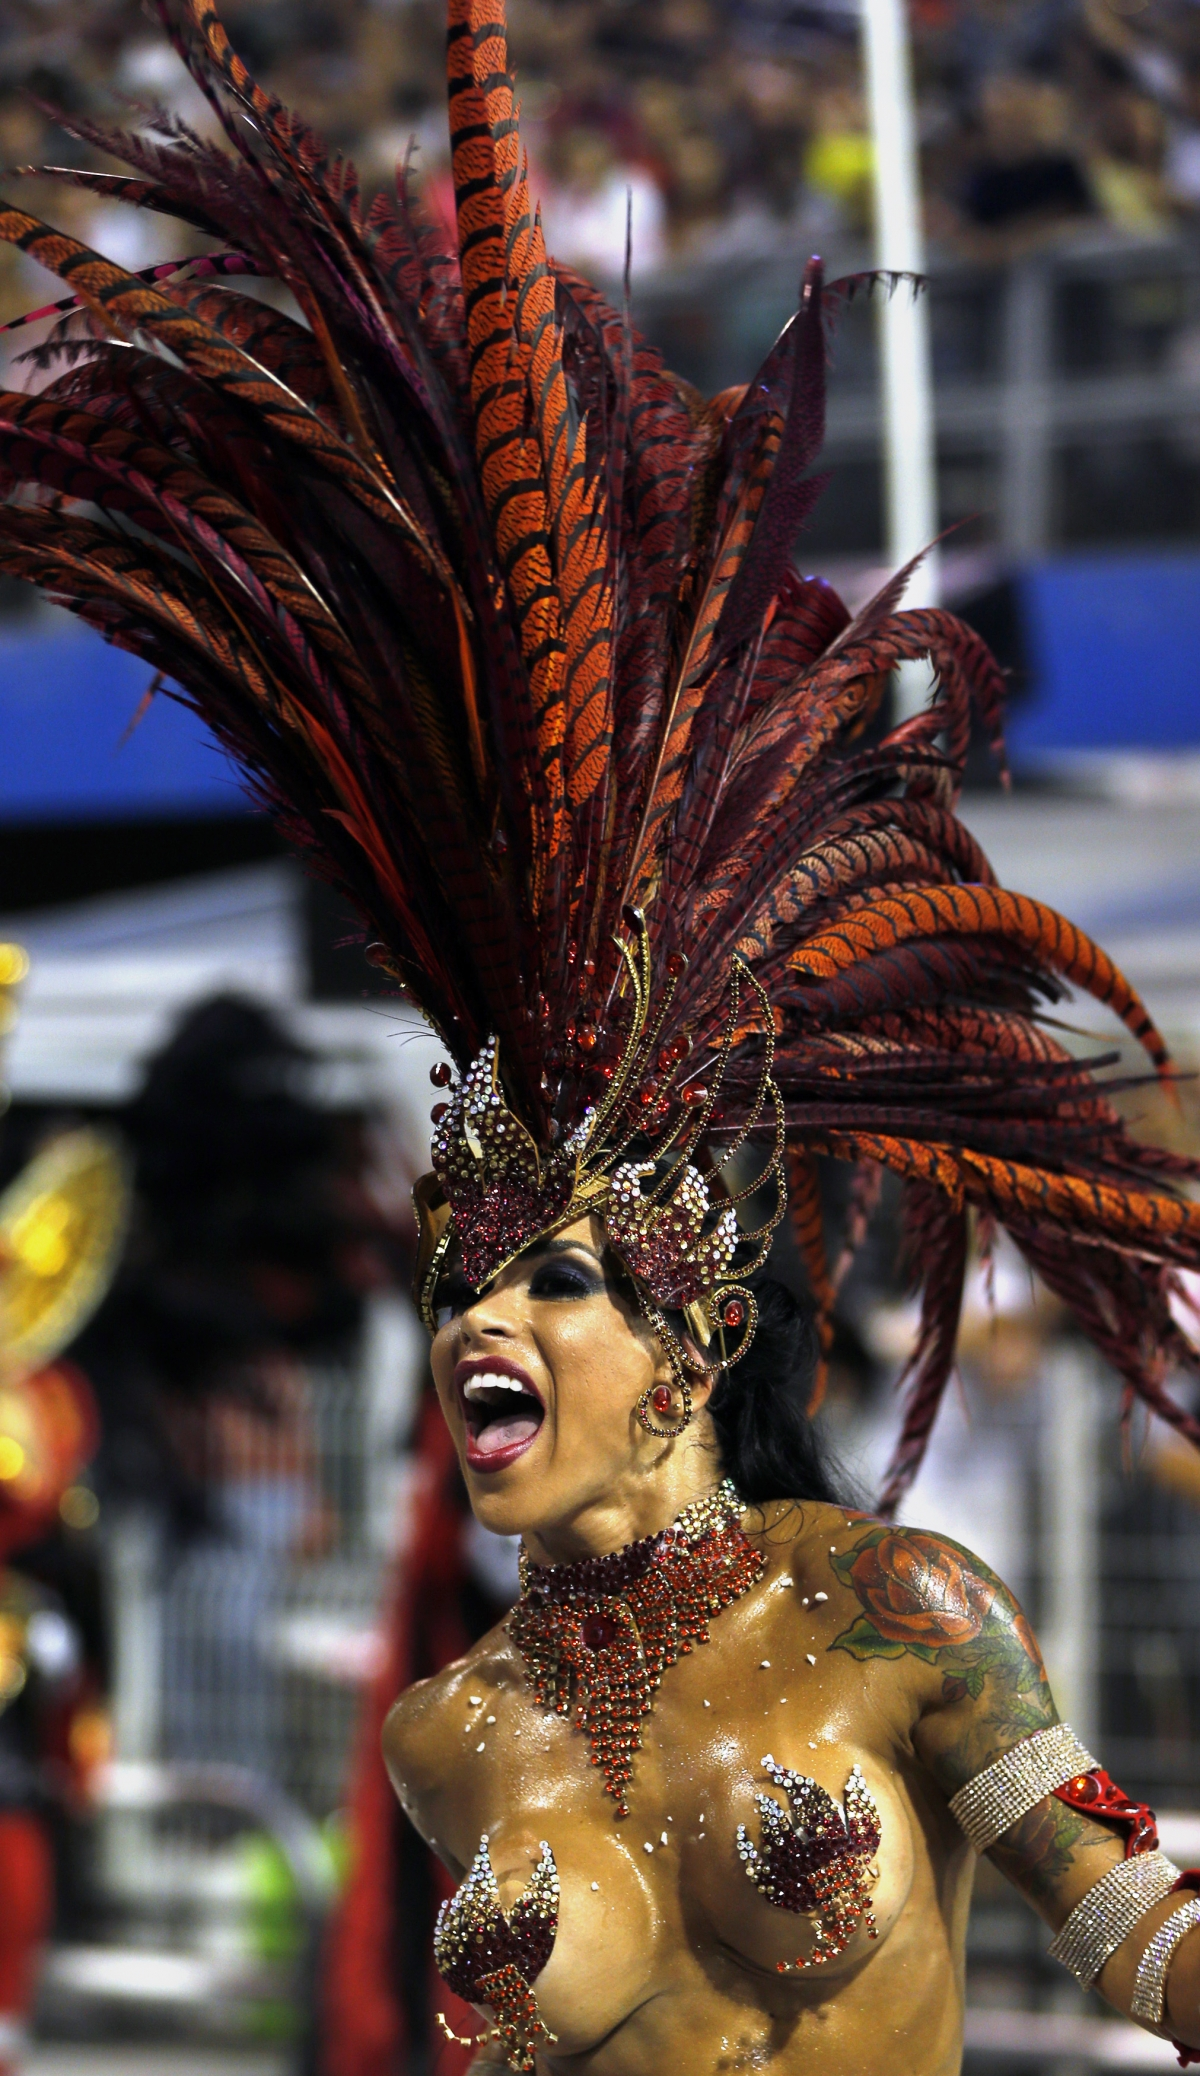 A reveller from the Gavioes da Fiel samba school takes part in the Special Group category of the annual Carnival parade in Sao Paulo's Sambadrome March 1, 2014.